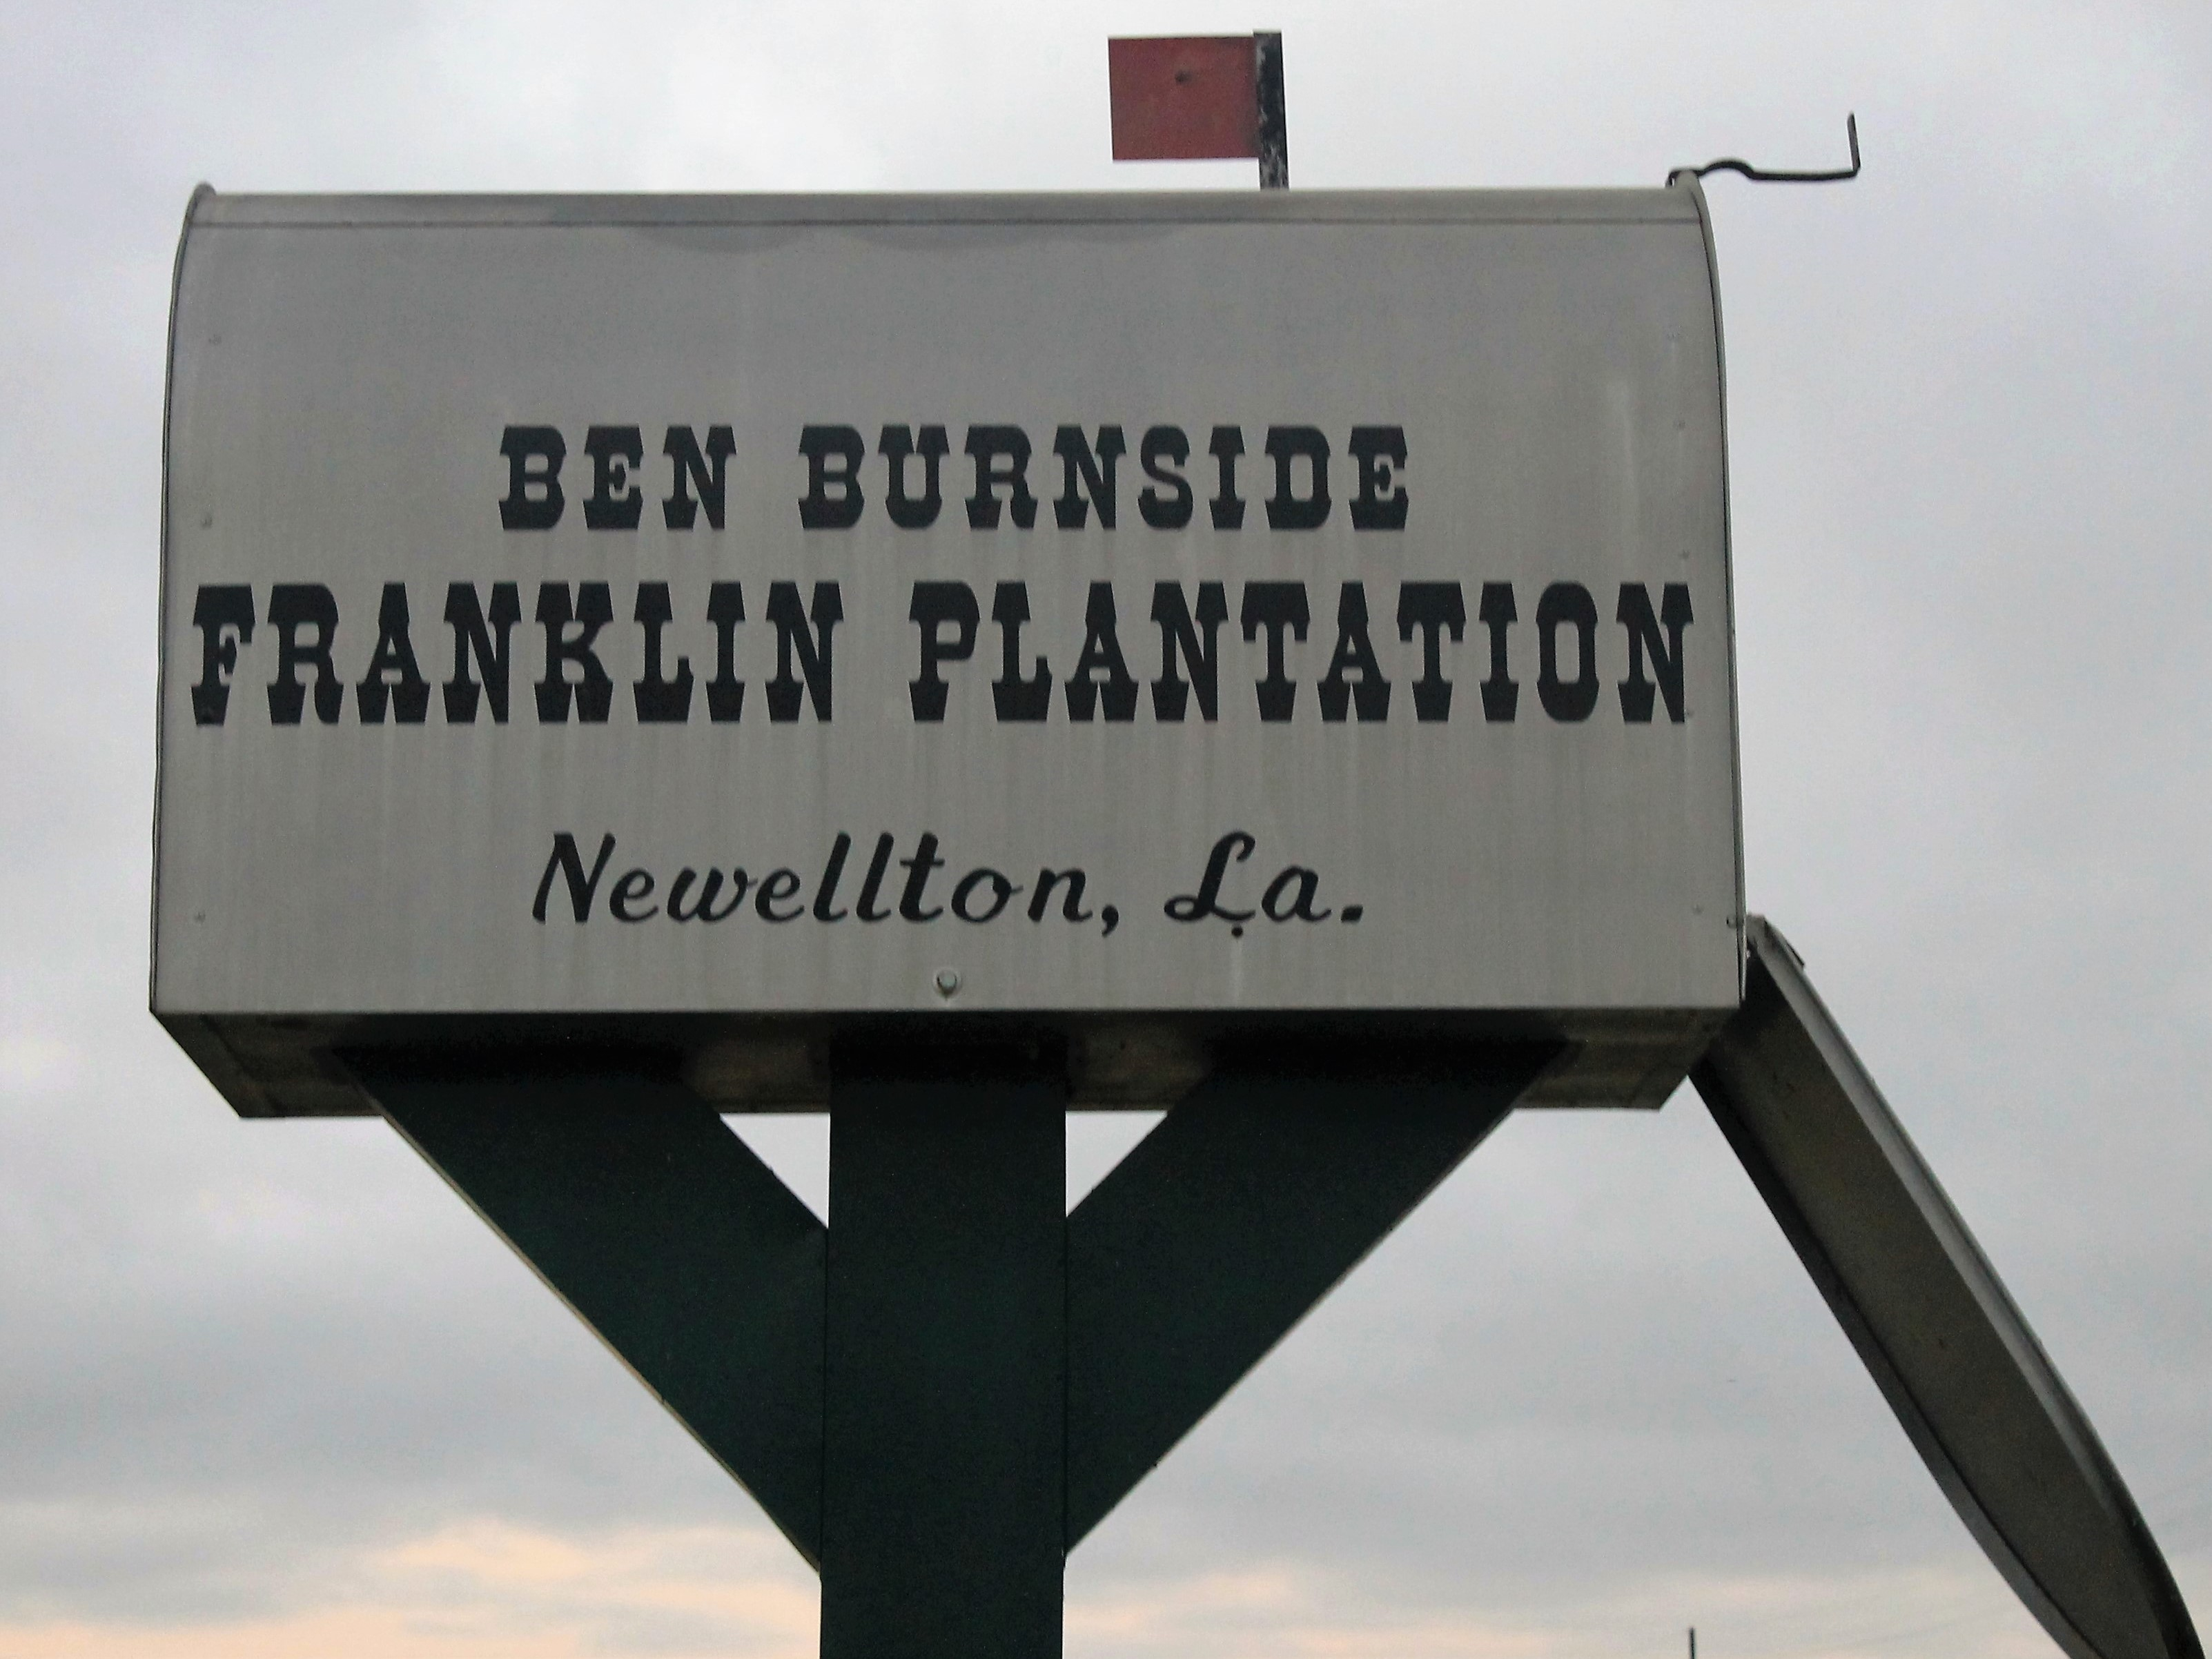 newellton online dating Town of newellton utility department, newellton, louisiana online utility account payment portal utility bills and utility deposits can be paid online here.